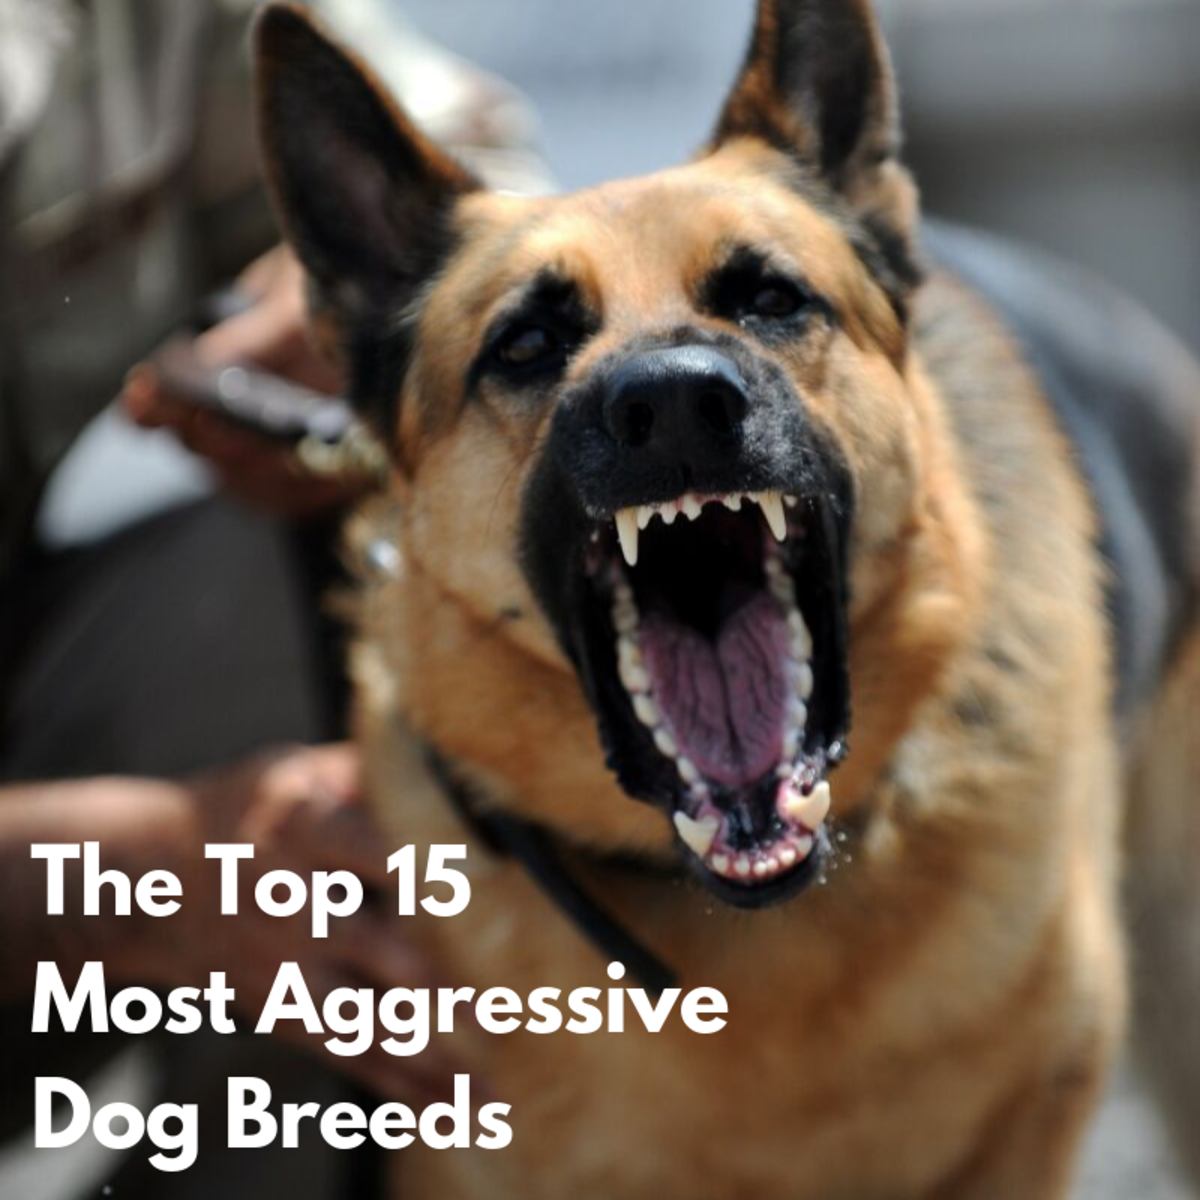 This article will break down 15 of the most aggressive dog breeds around the world and give you a few details about each one.